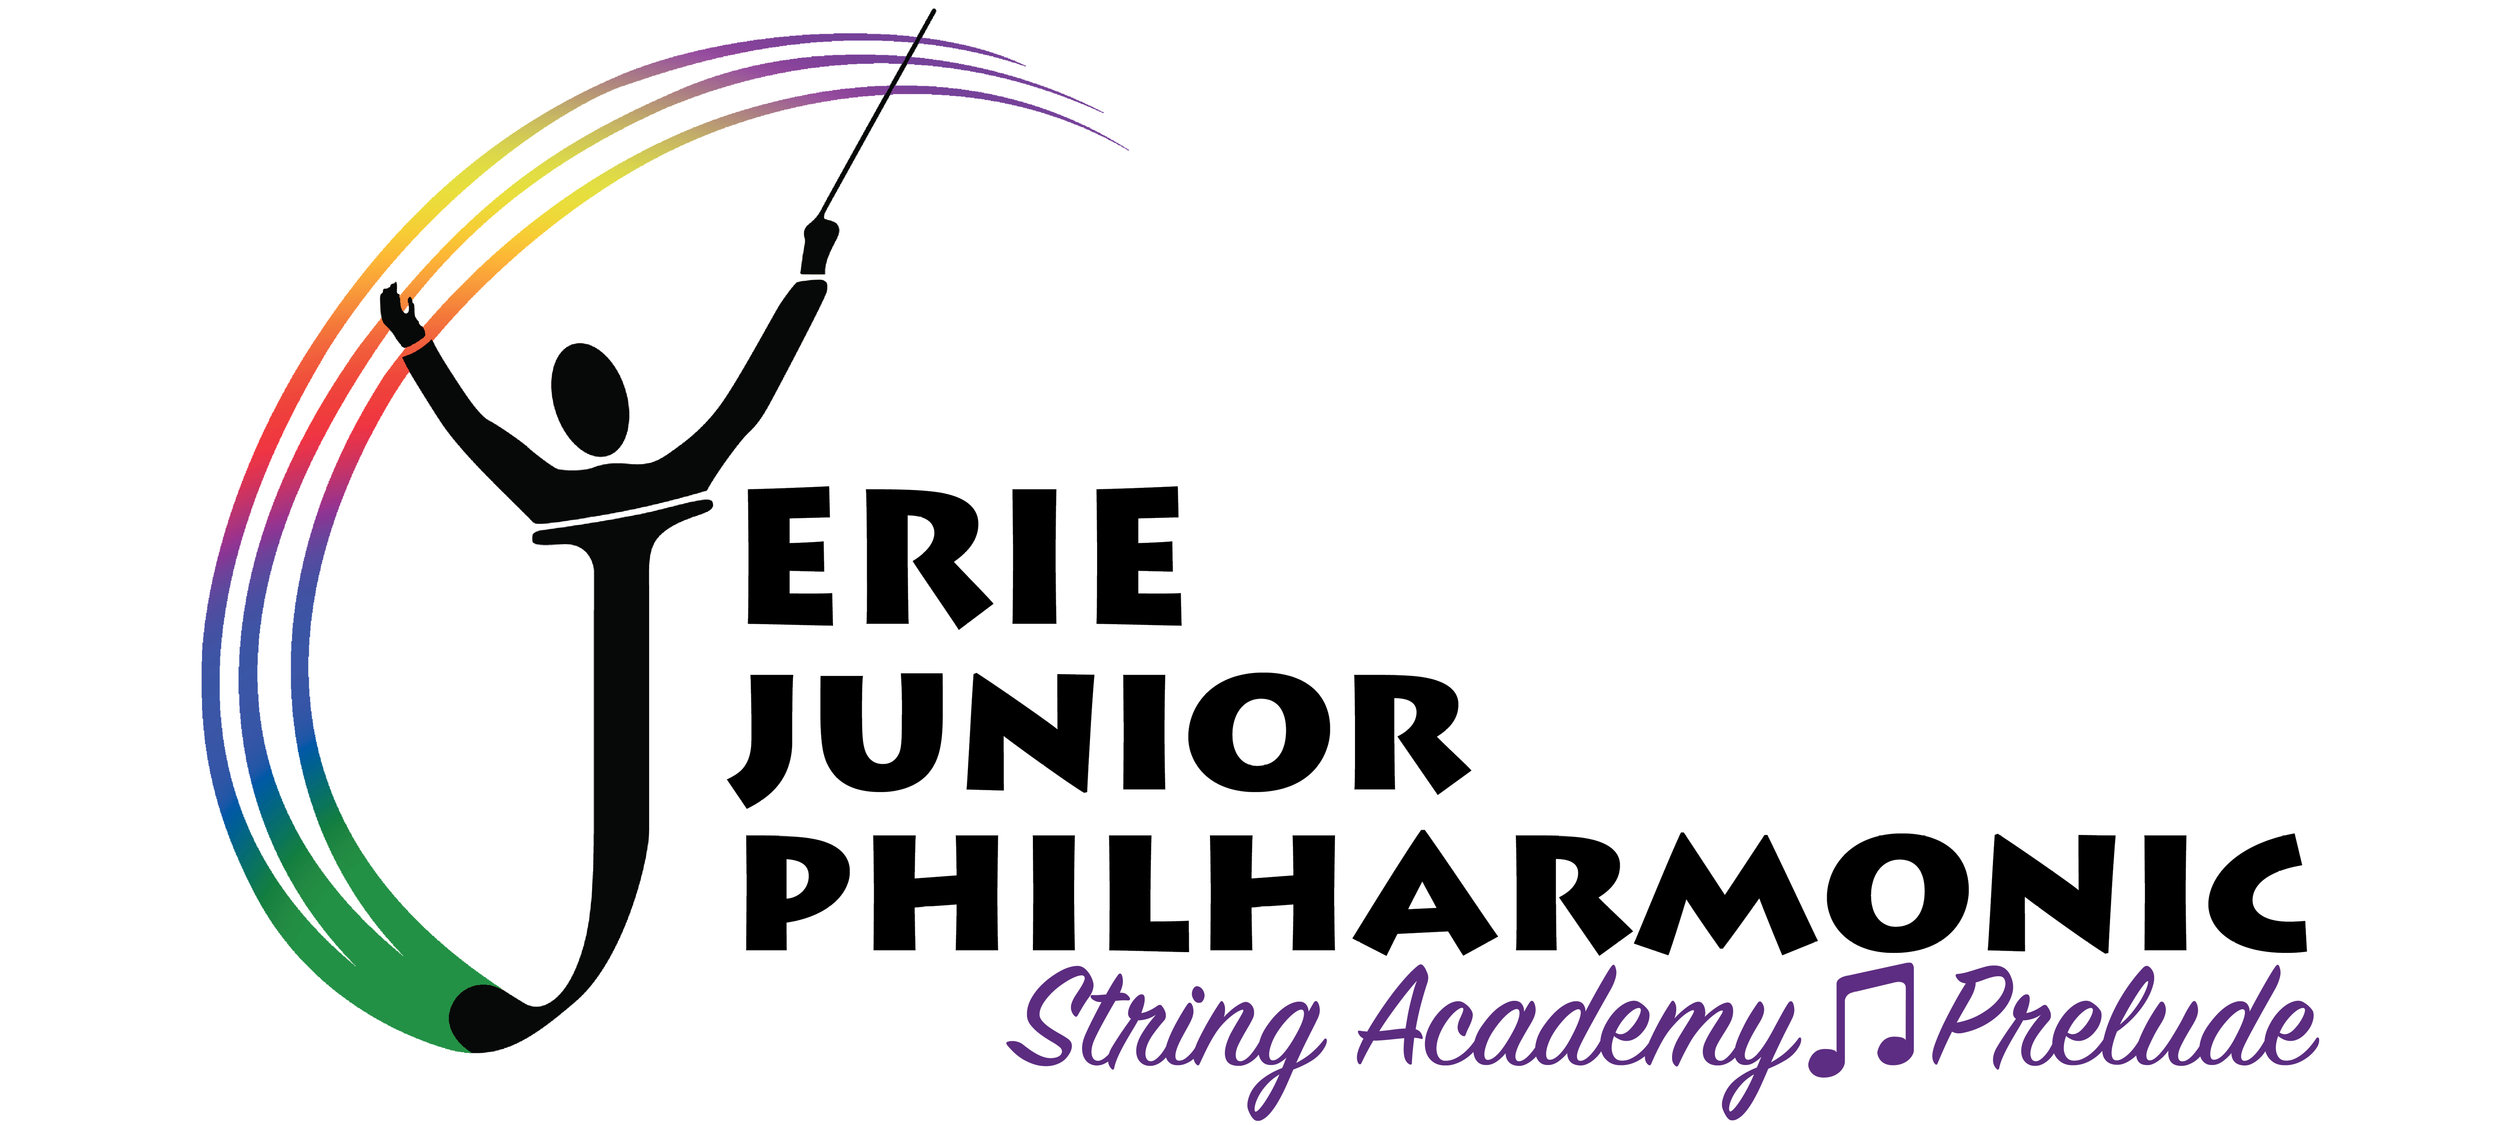 Jr. Phil Prelude Srings LOGO.jpg